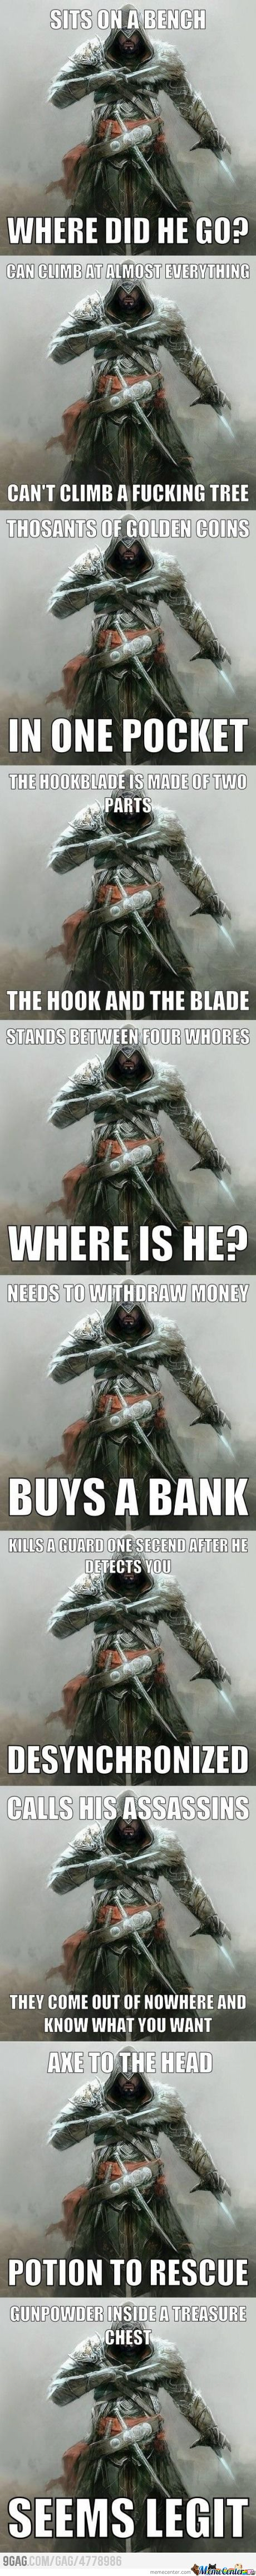 One Does Not Simply Finds Logic In Ac. ....